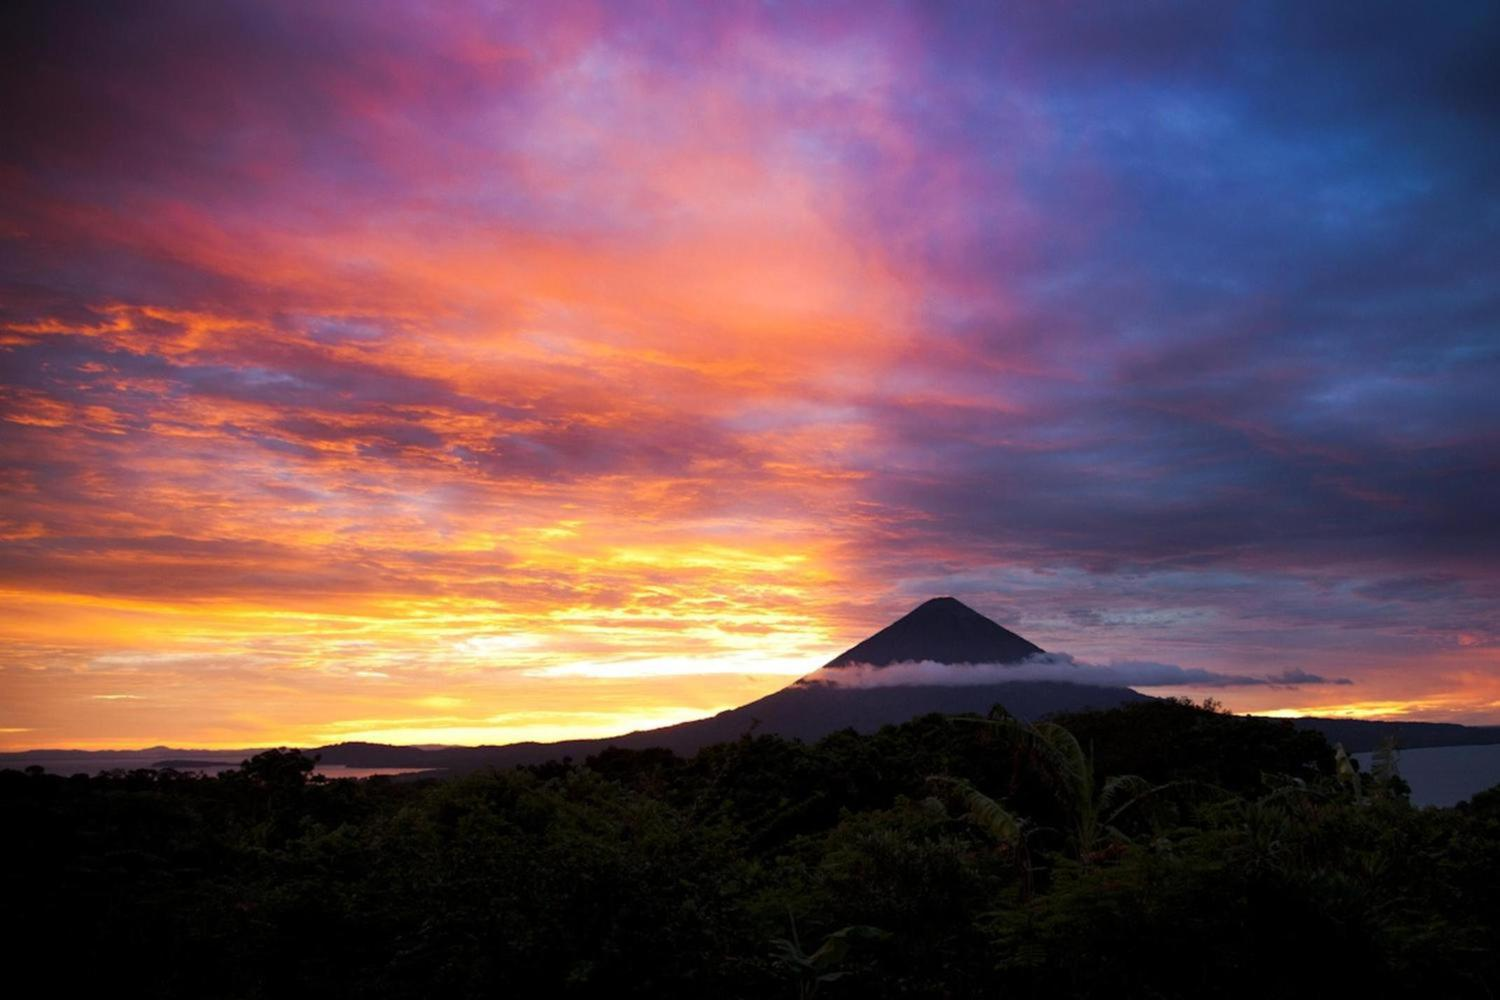 nicaragua-ometepe-totoco-ecolodge-copyright-alicia-fox-photography-sunset-over-volcano